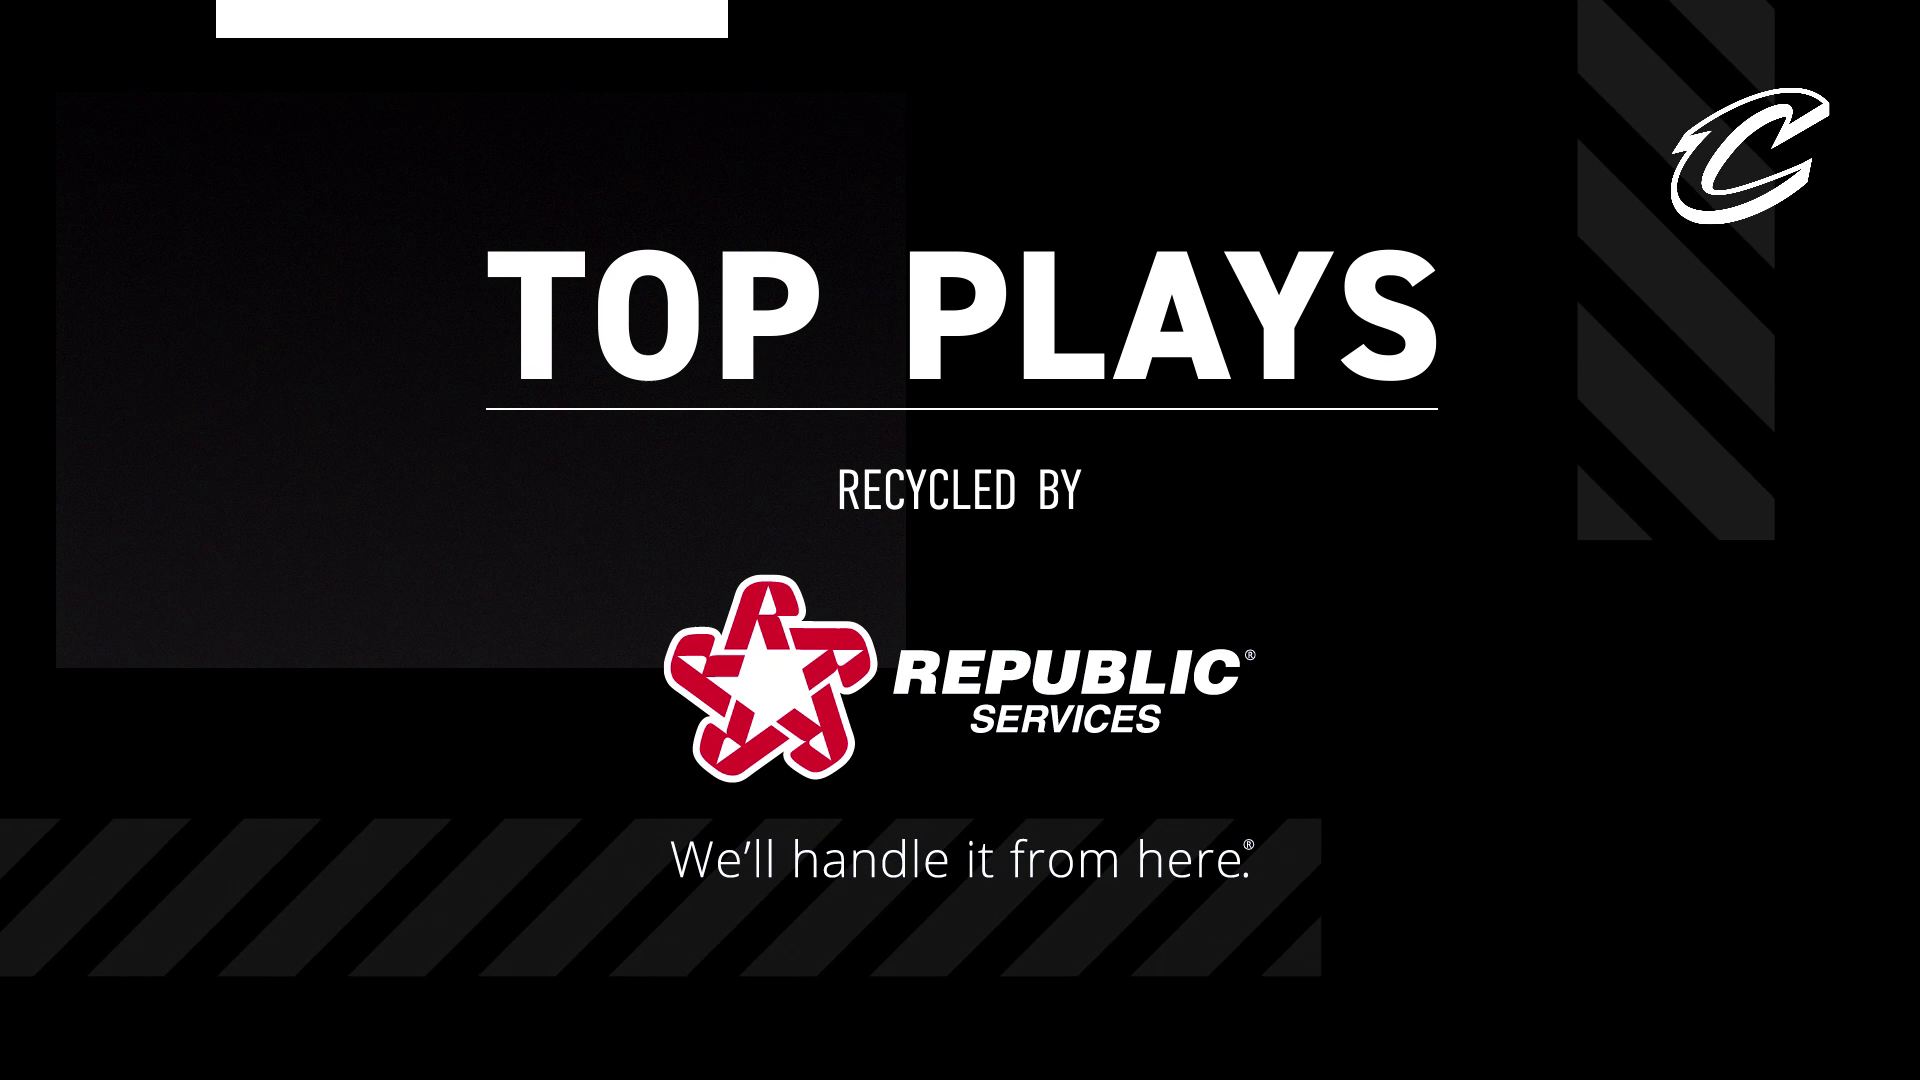 Top Five Plays Recycled by Republic Services